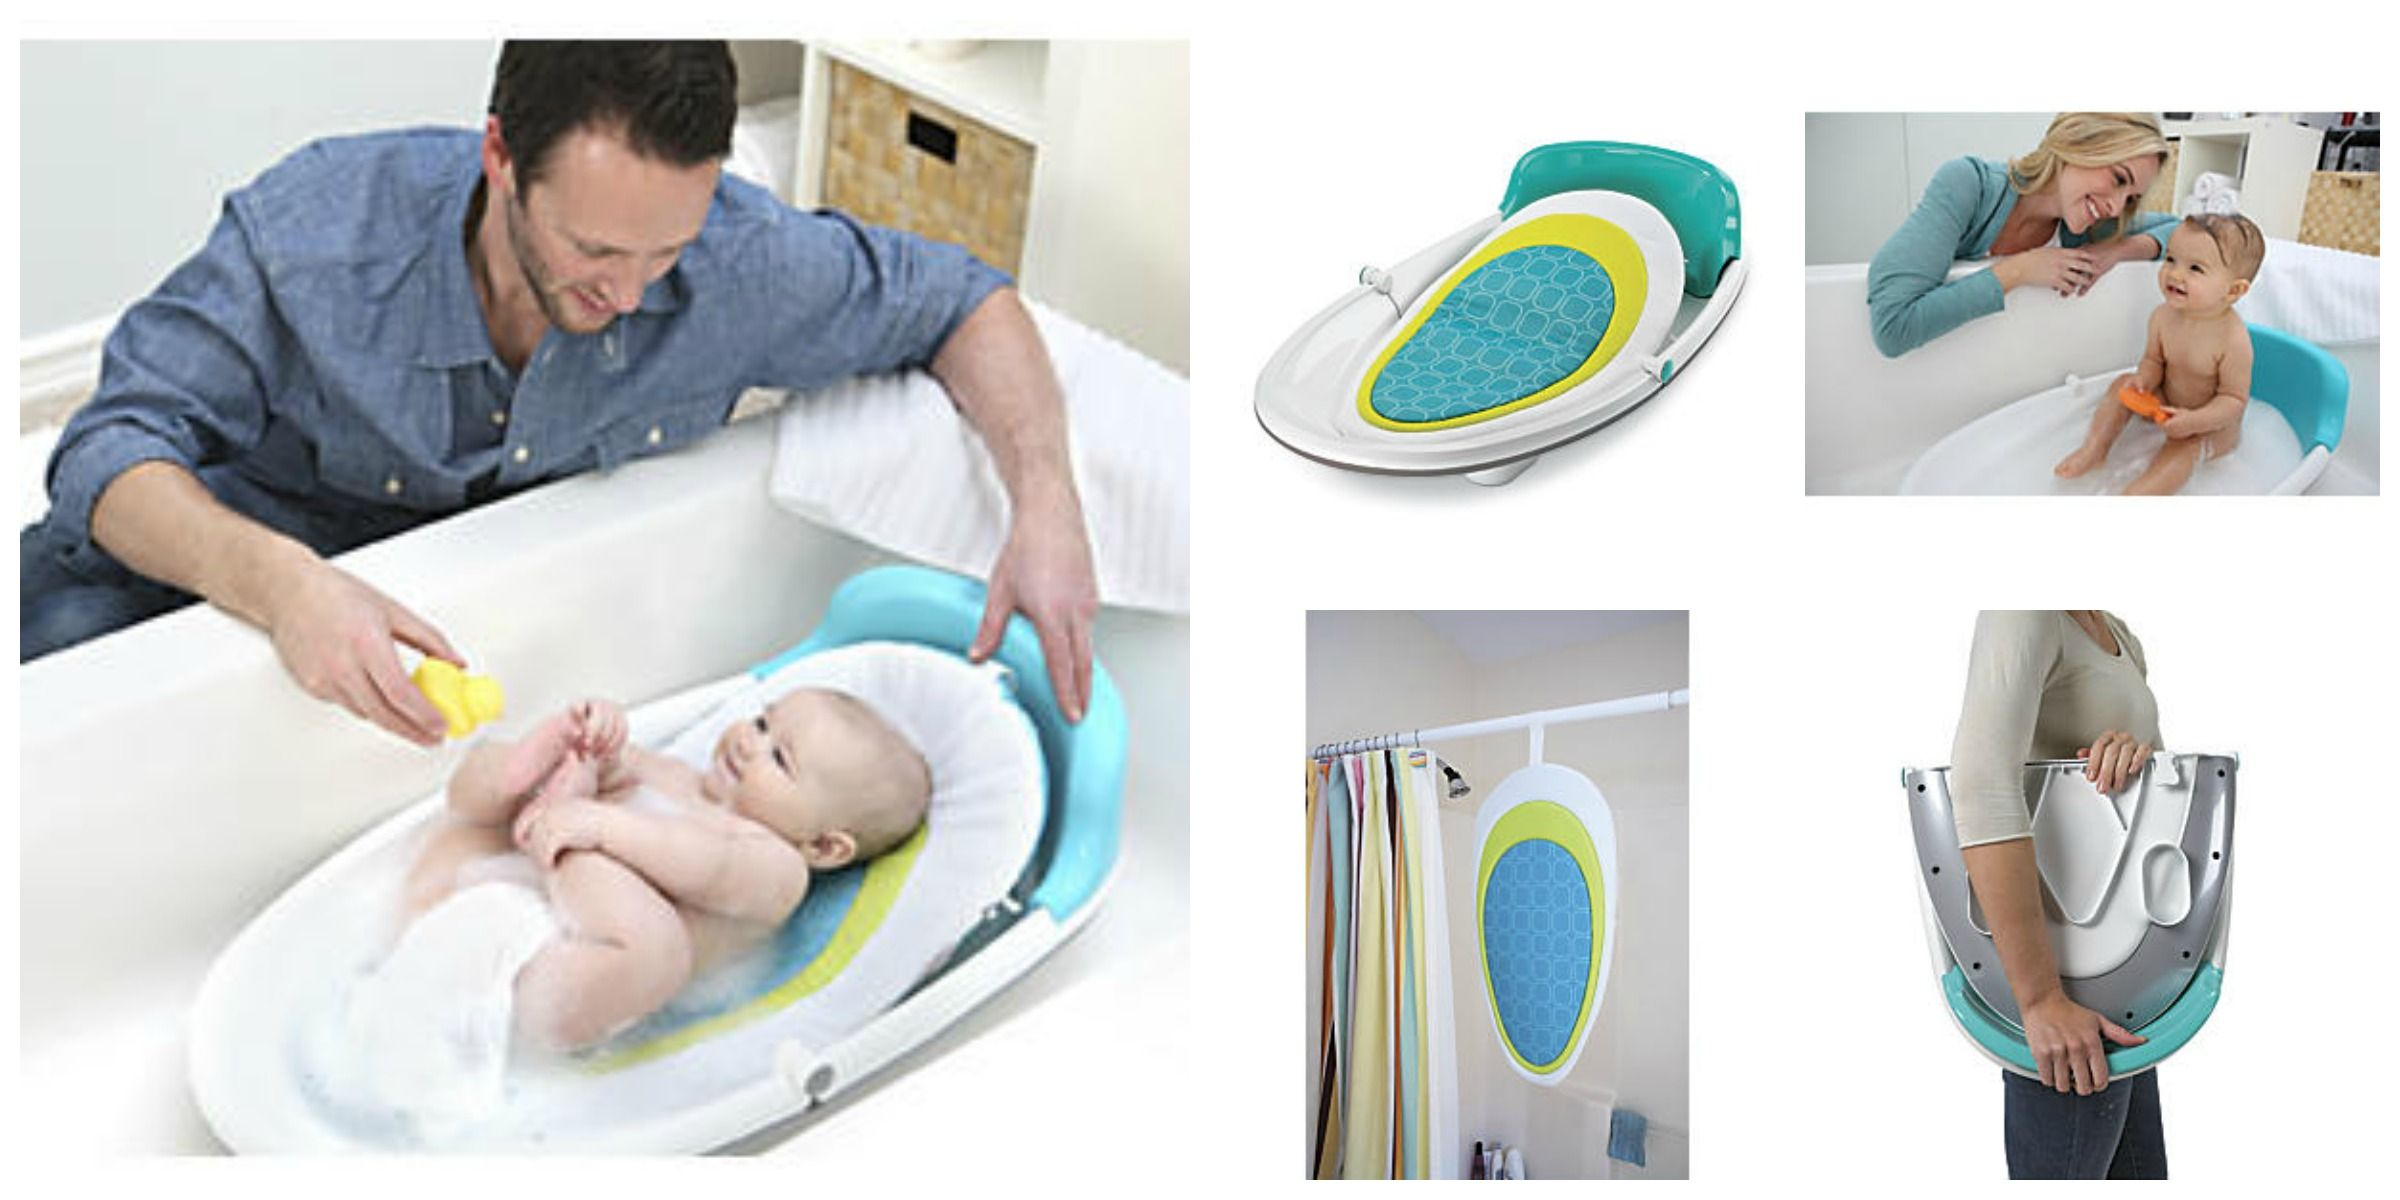 Easy Reach Baby Bath Tub: The baby bath tub for small bathrooms ...